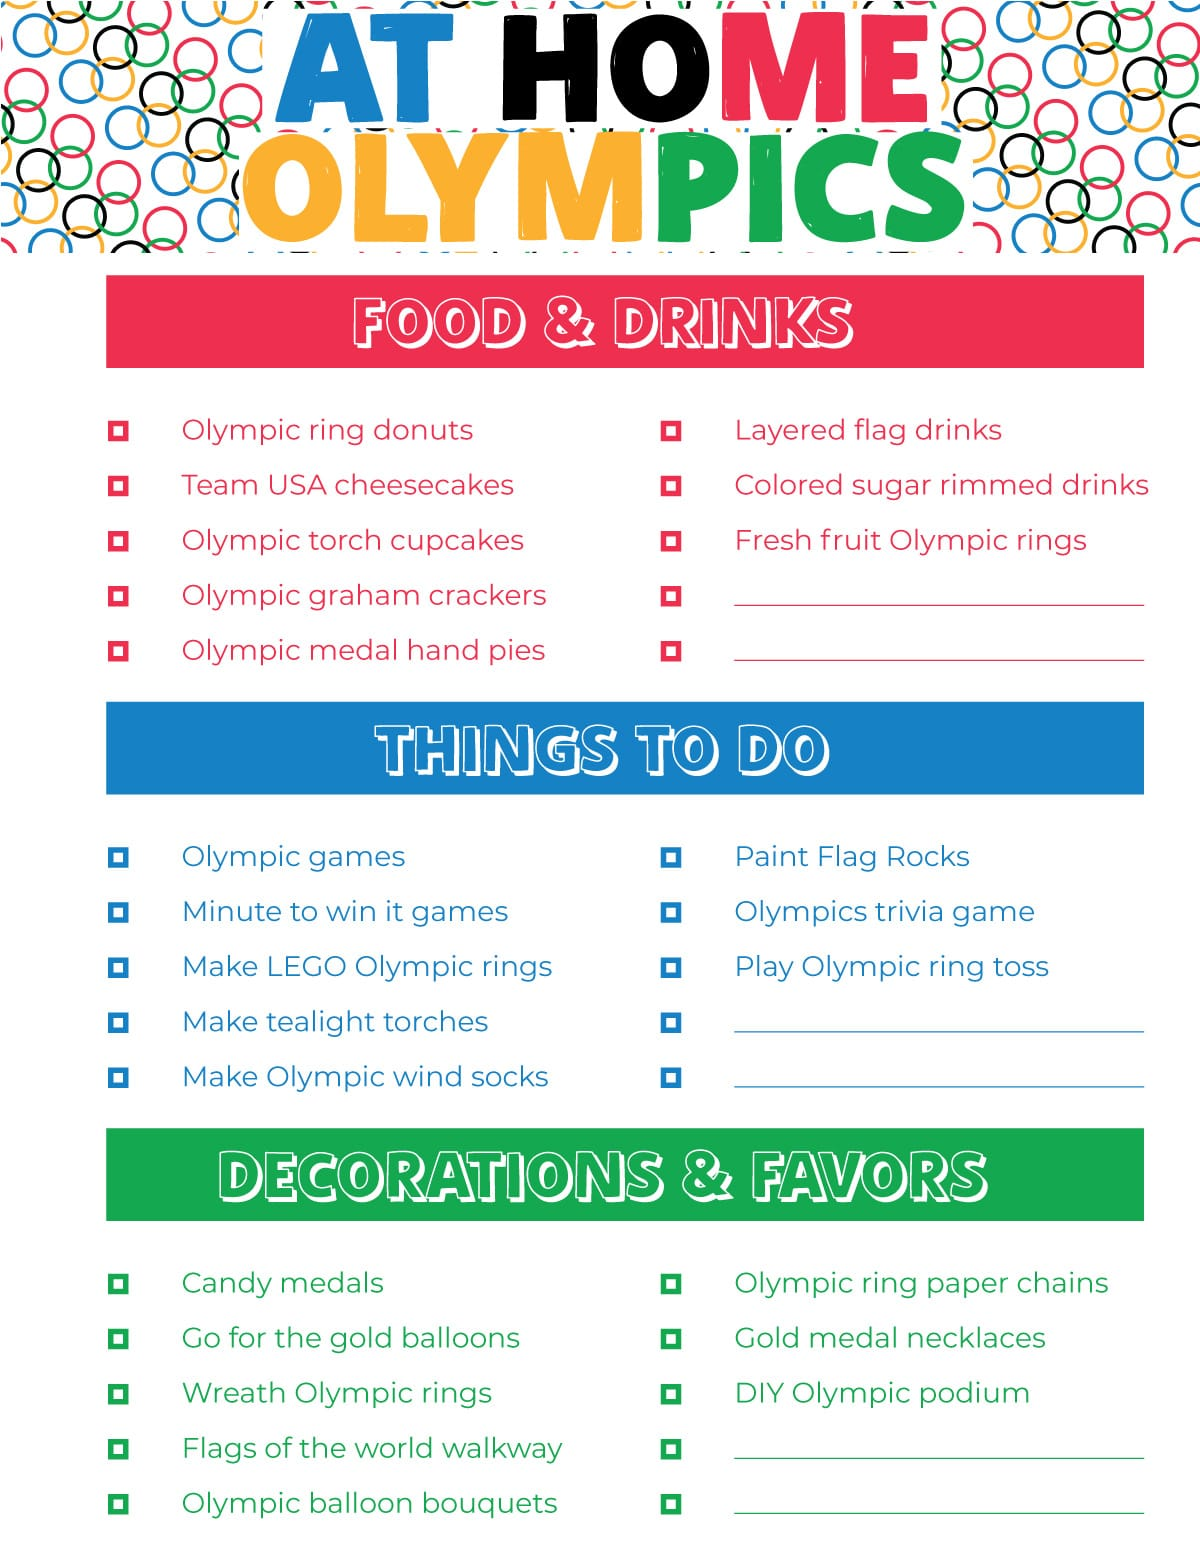 At home Olympics paper with ideas for an Olympic themed party